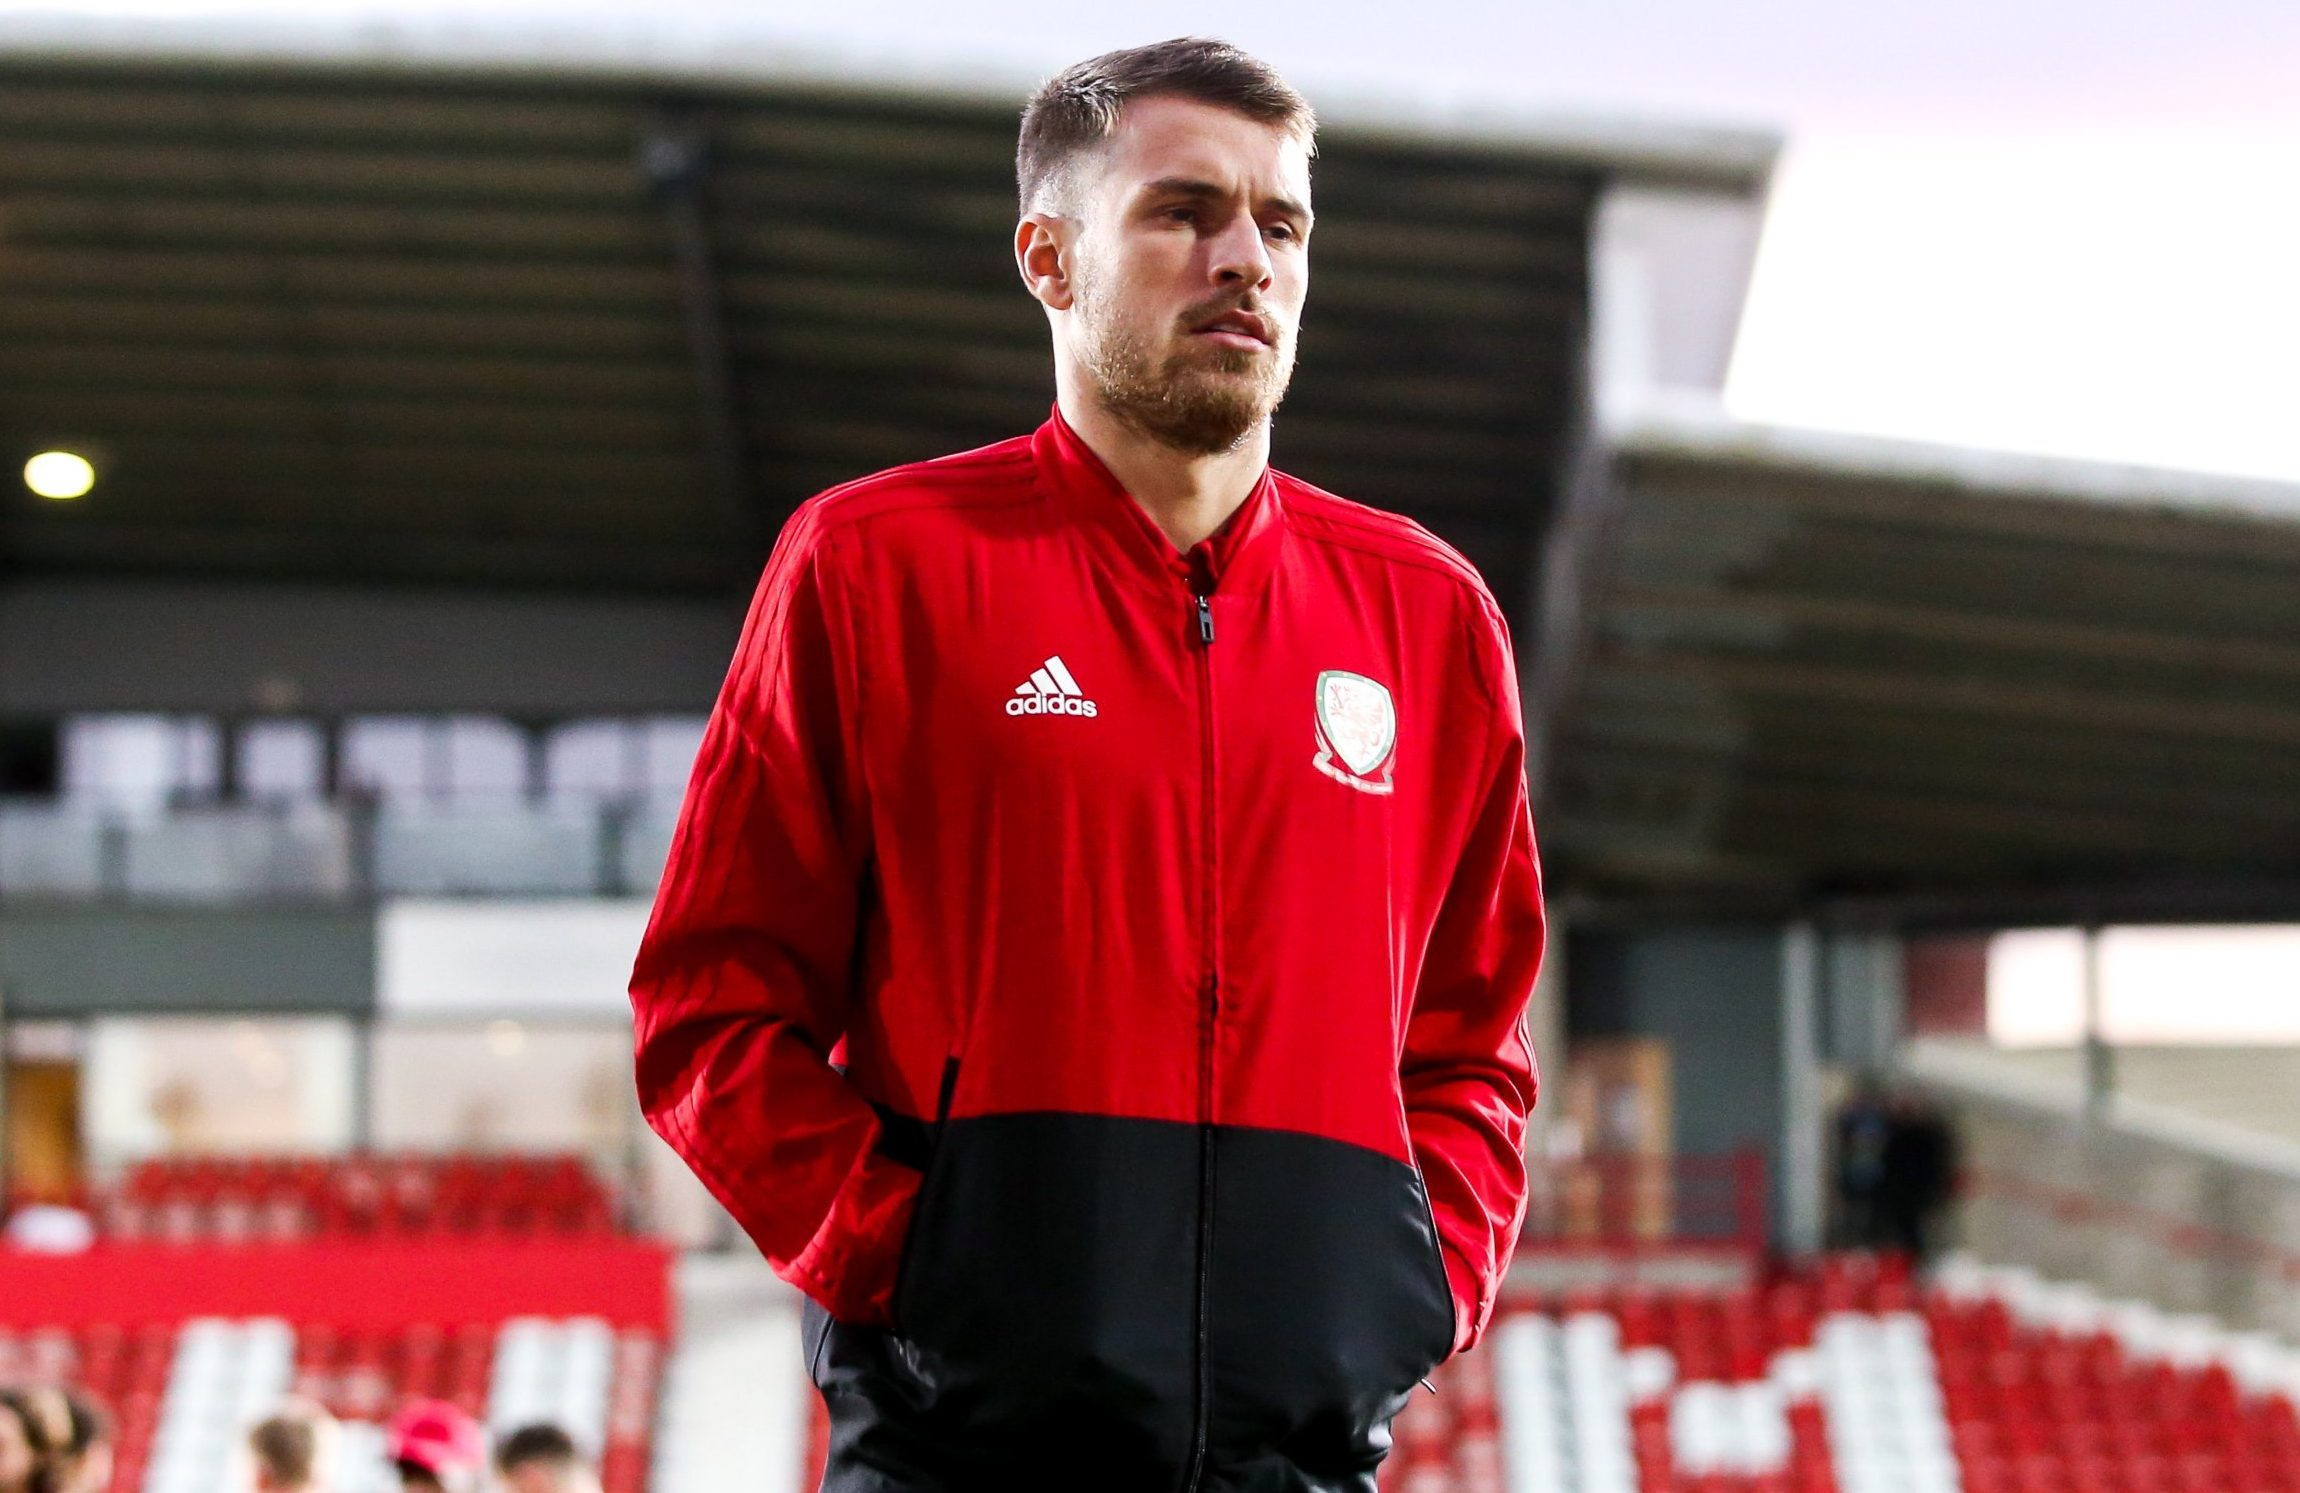 Aaron Ramsey returns to Arsenal for treatment on thigh injury